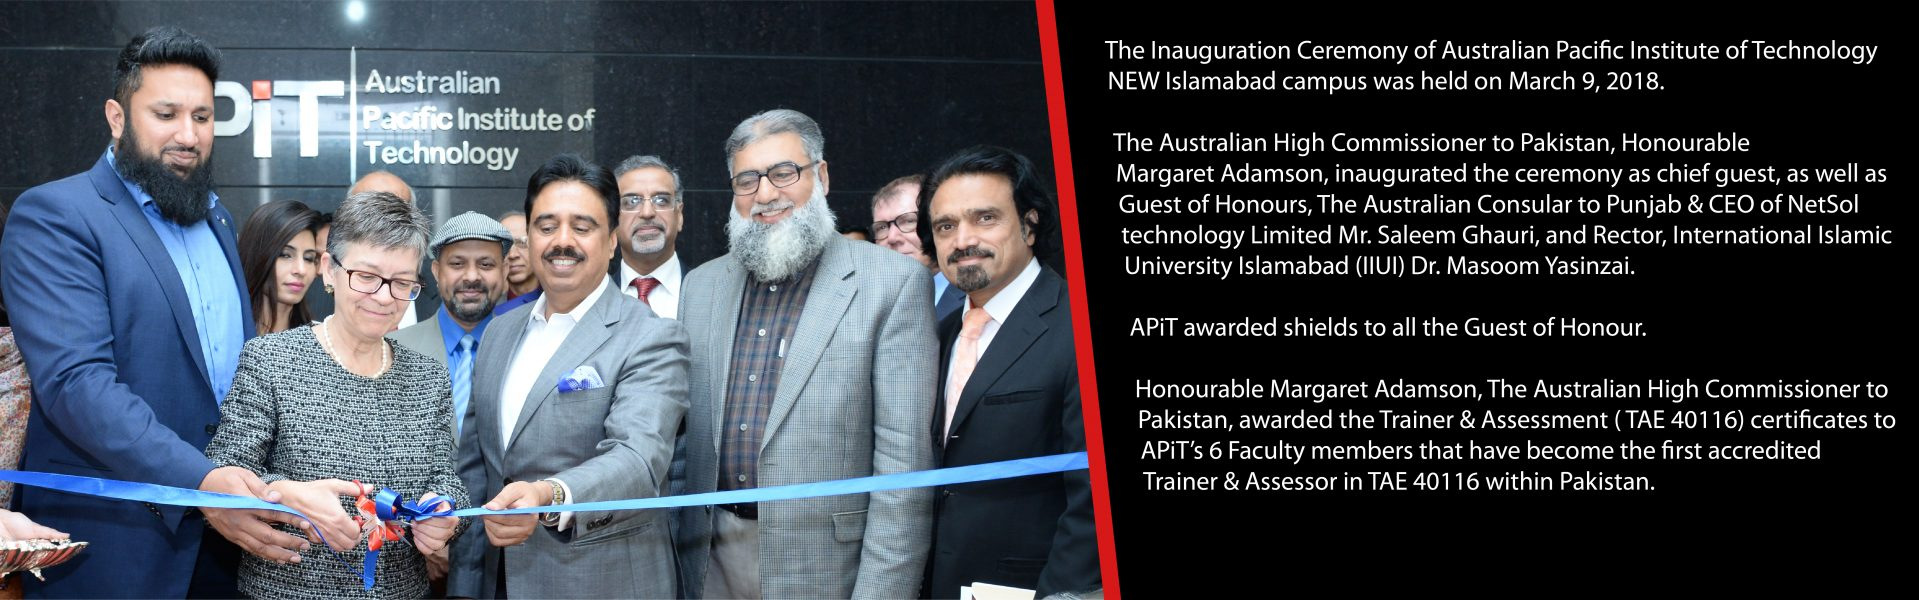 Inauguration-Ceremony-APIT